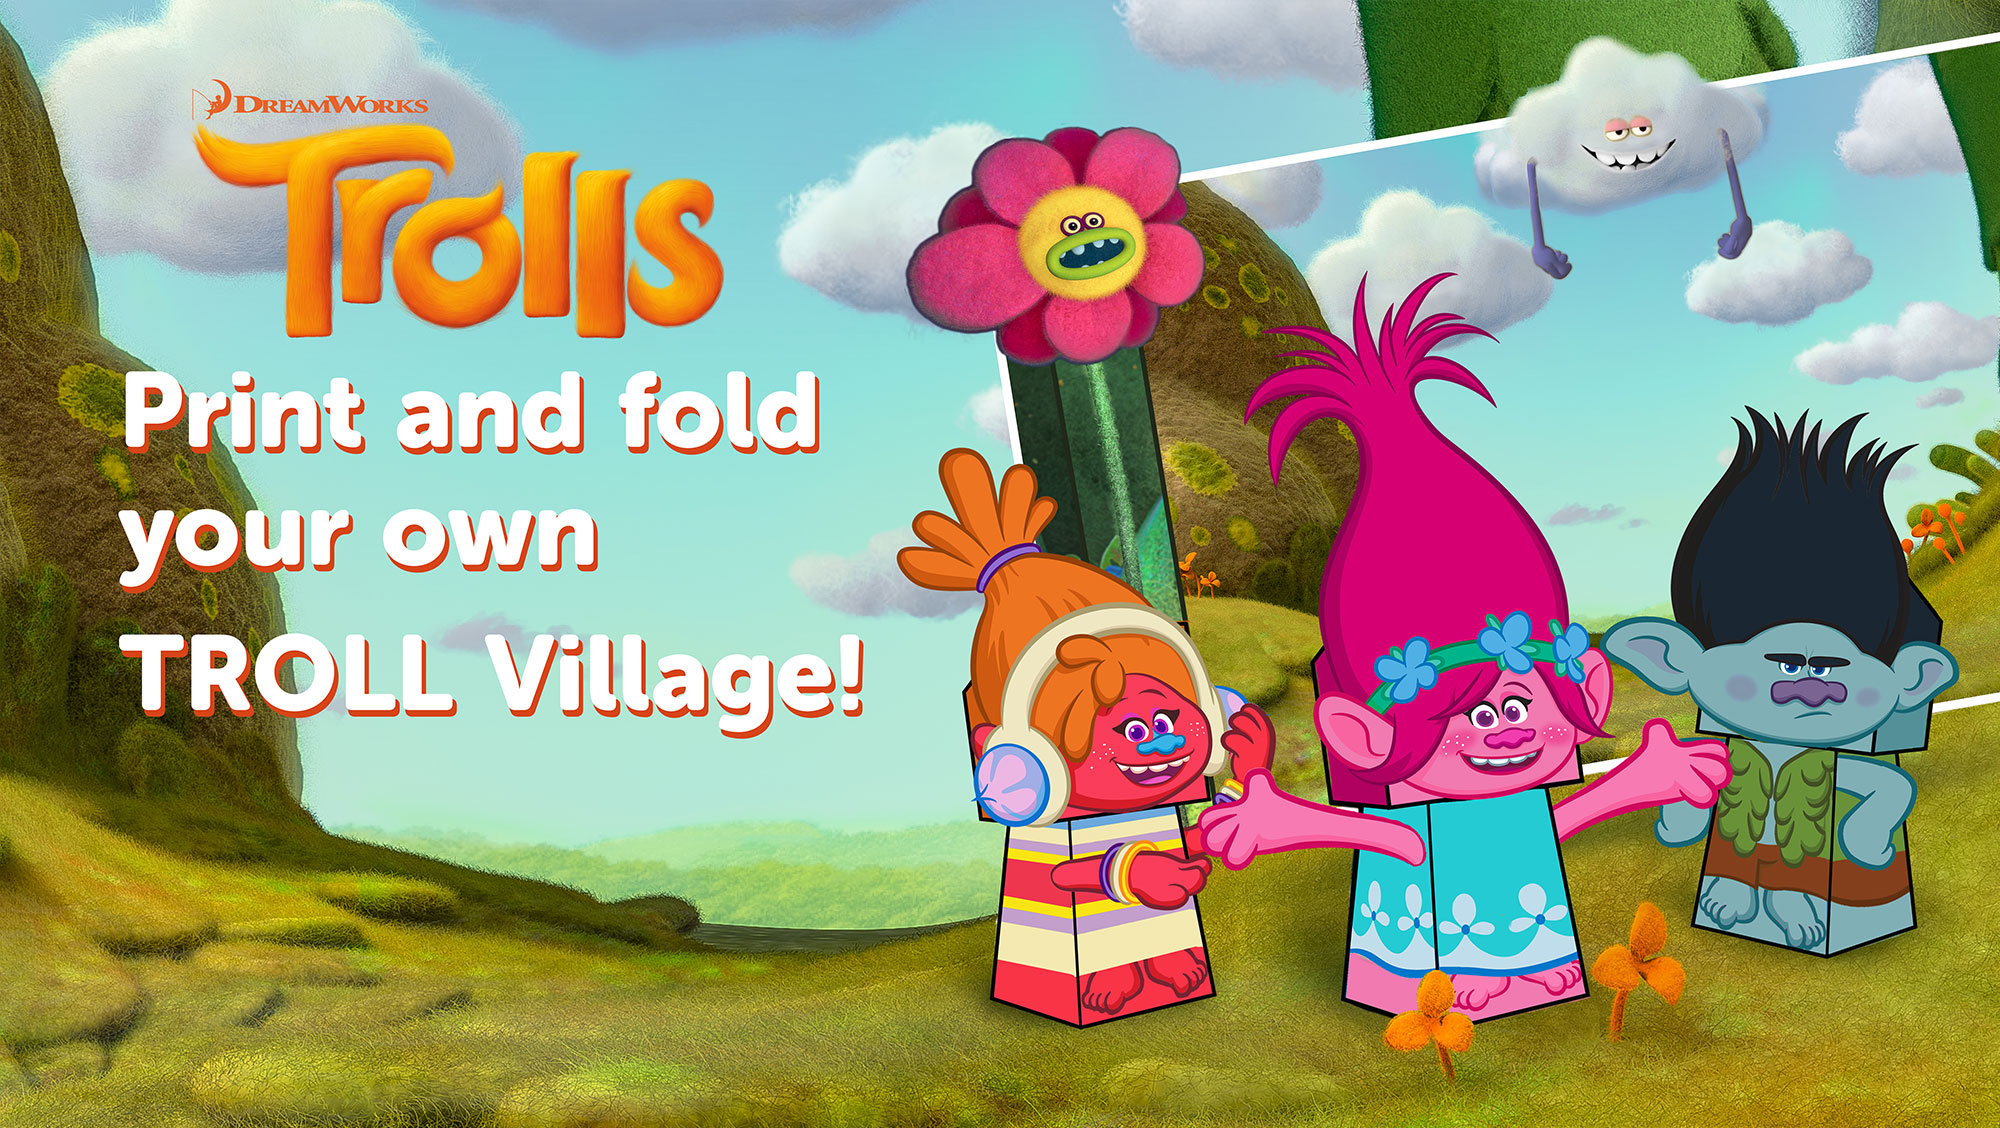 Trolls Village Printable Craft Printables 4 Mom